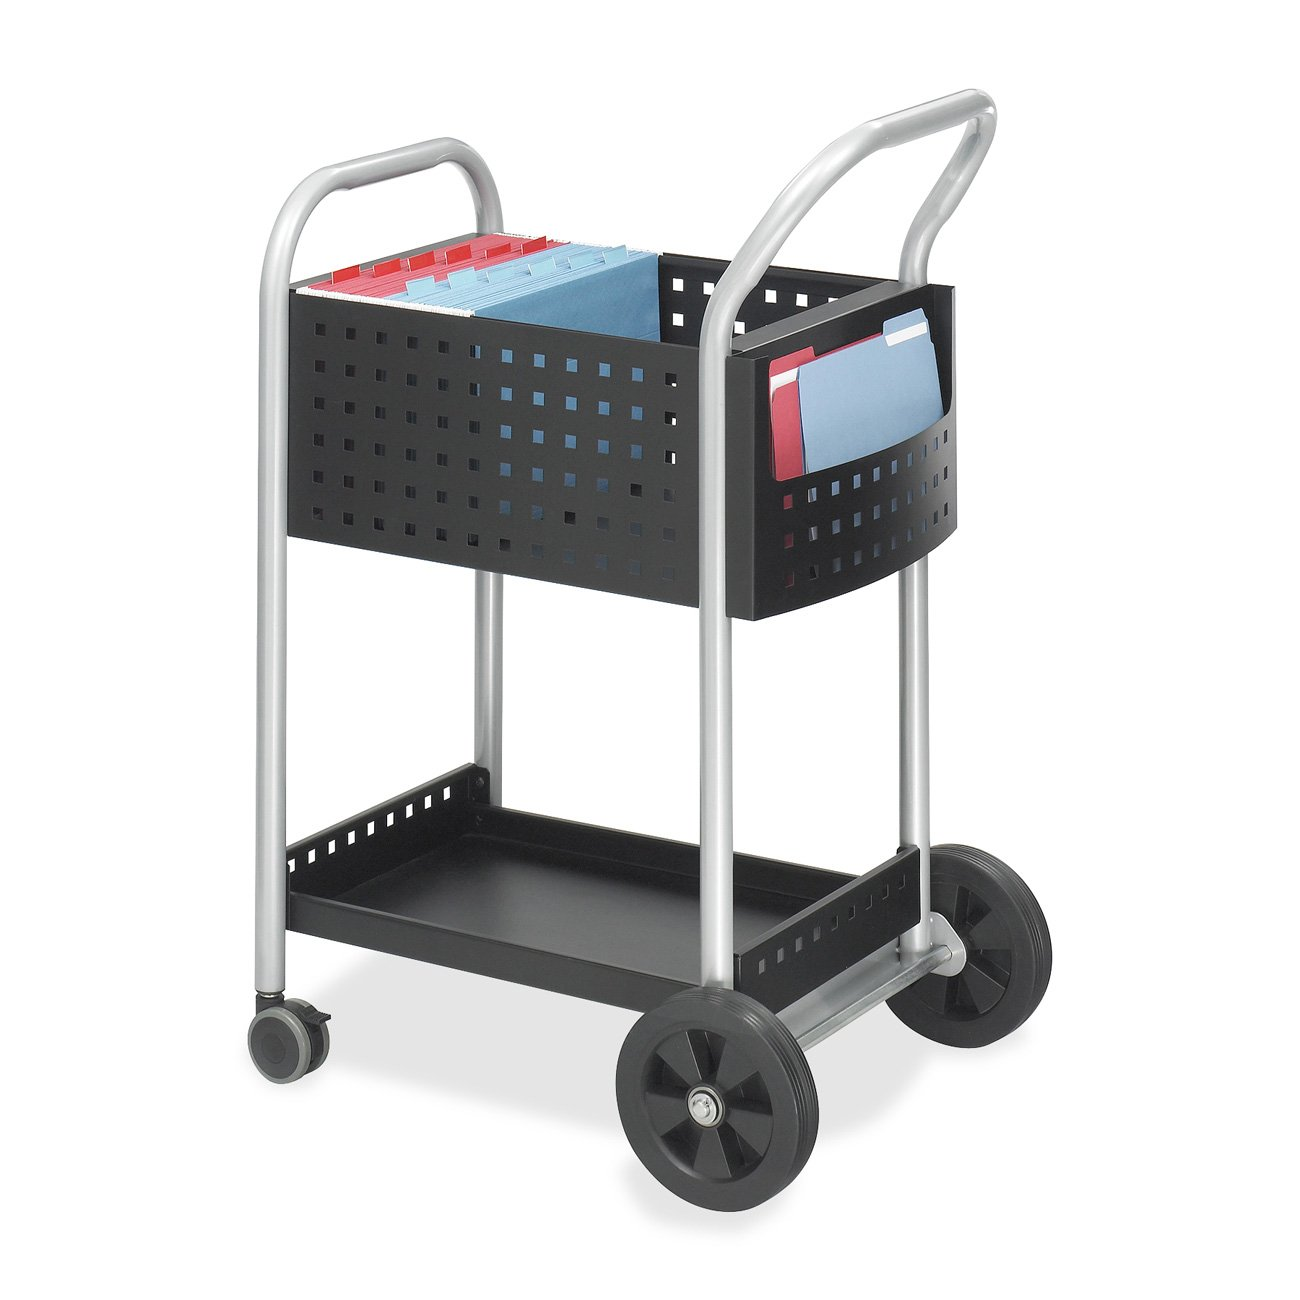 Safco Products Scoot Legal Size Mail Cart 5238BL Black, Swivel Wheels by Safco Products